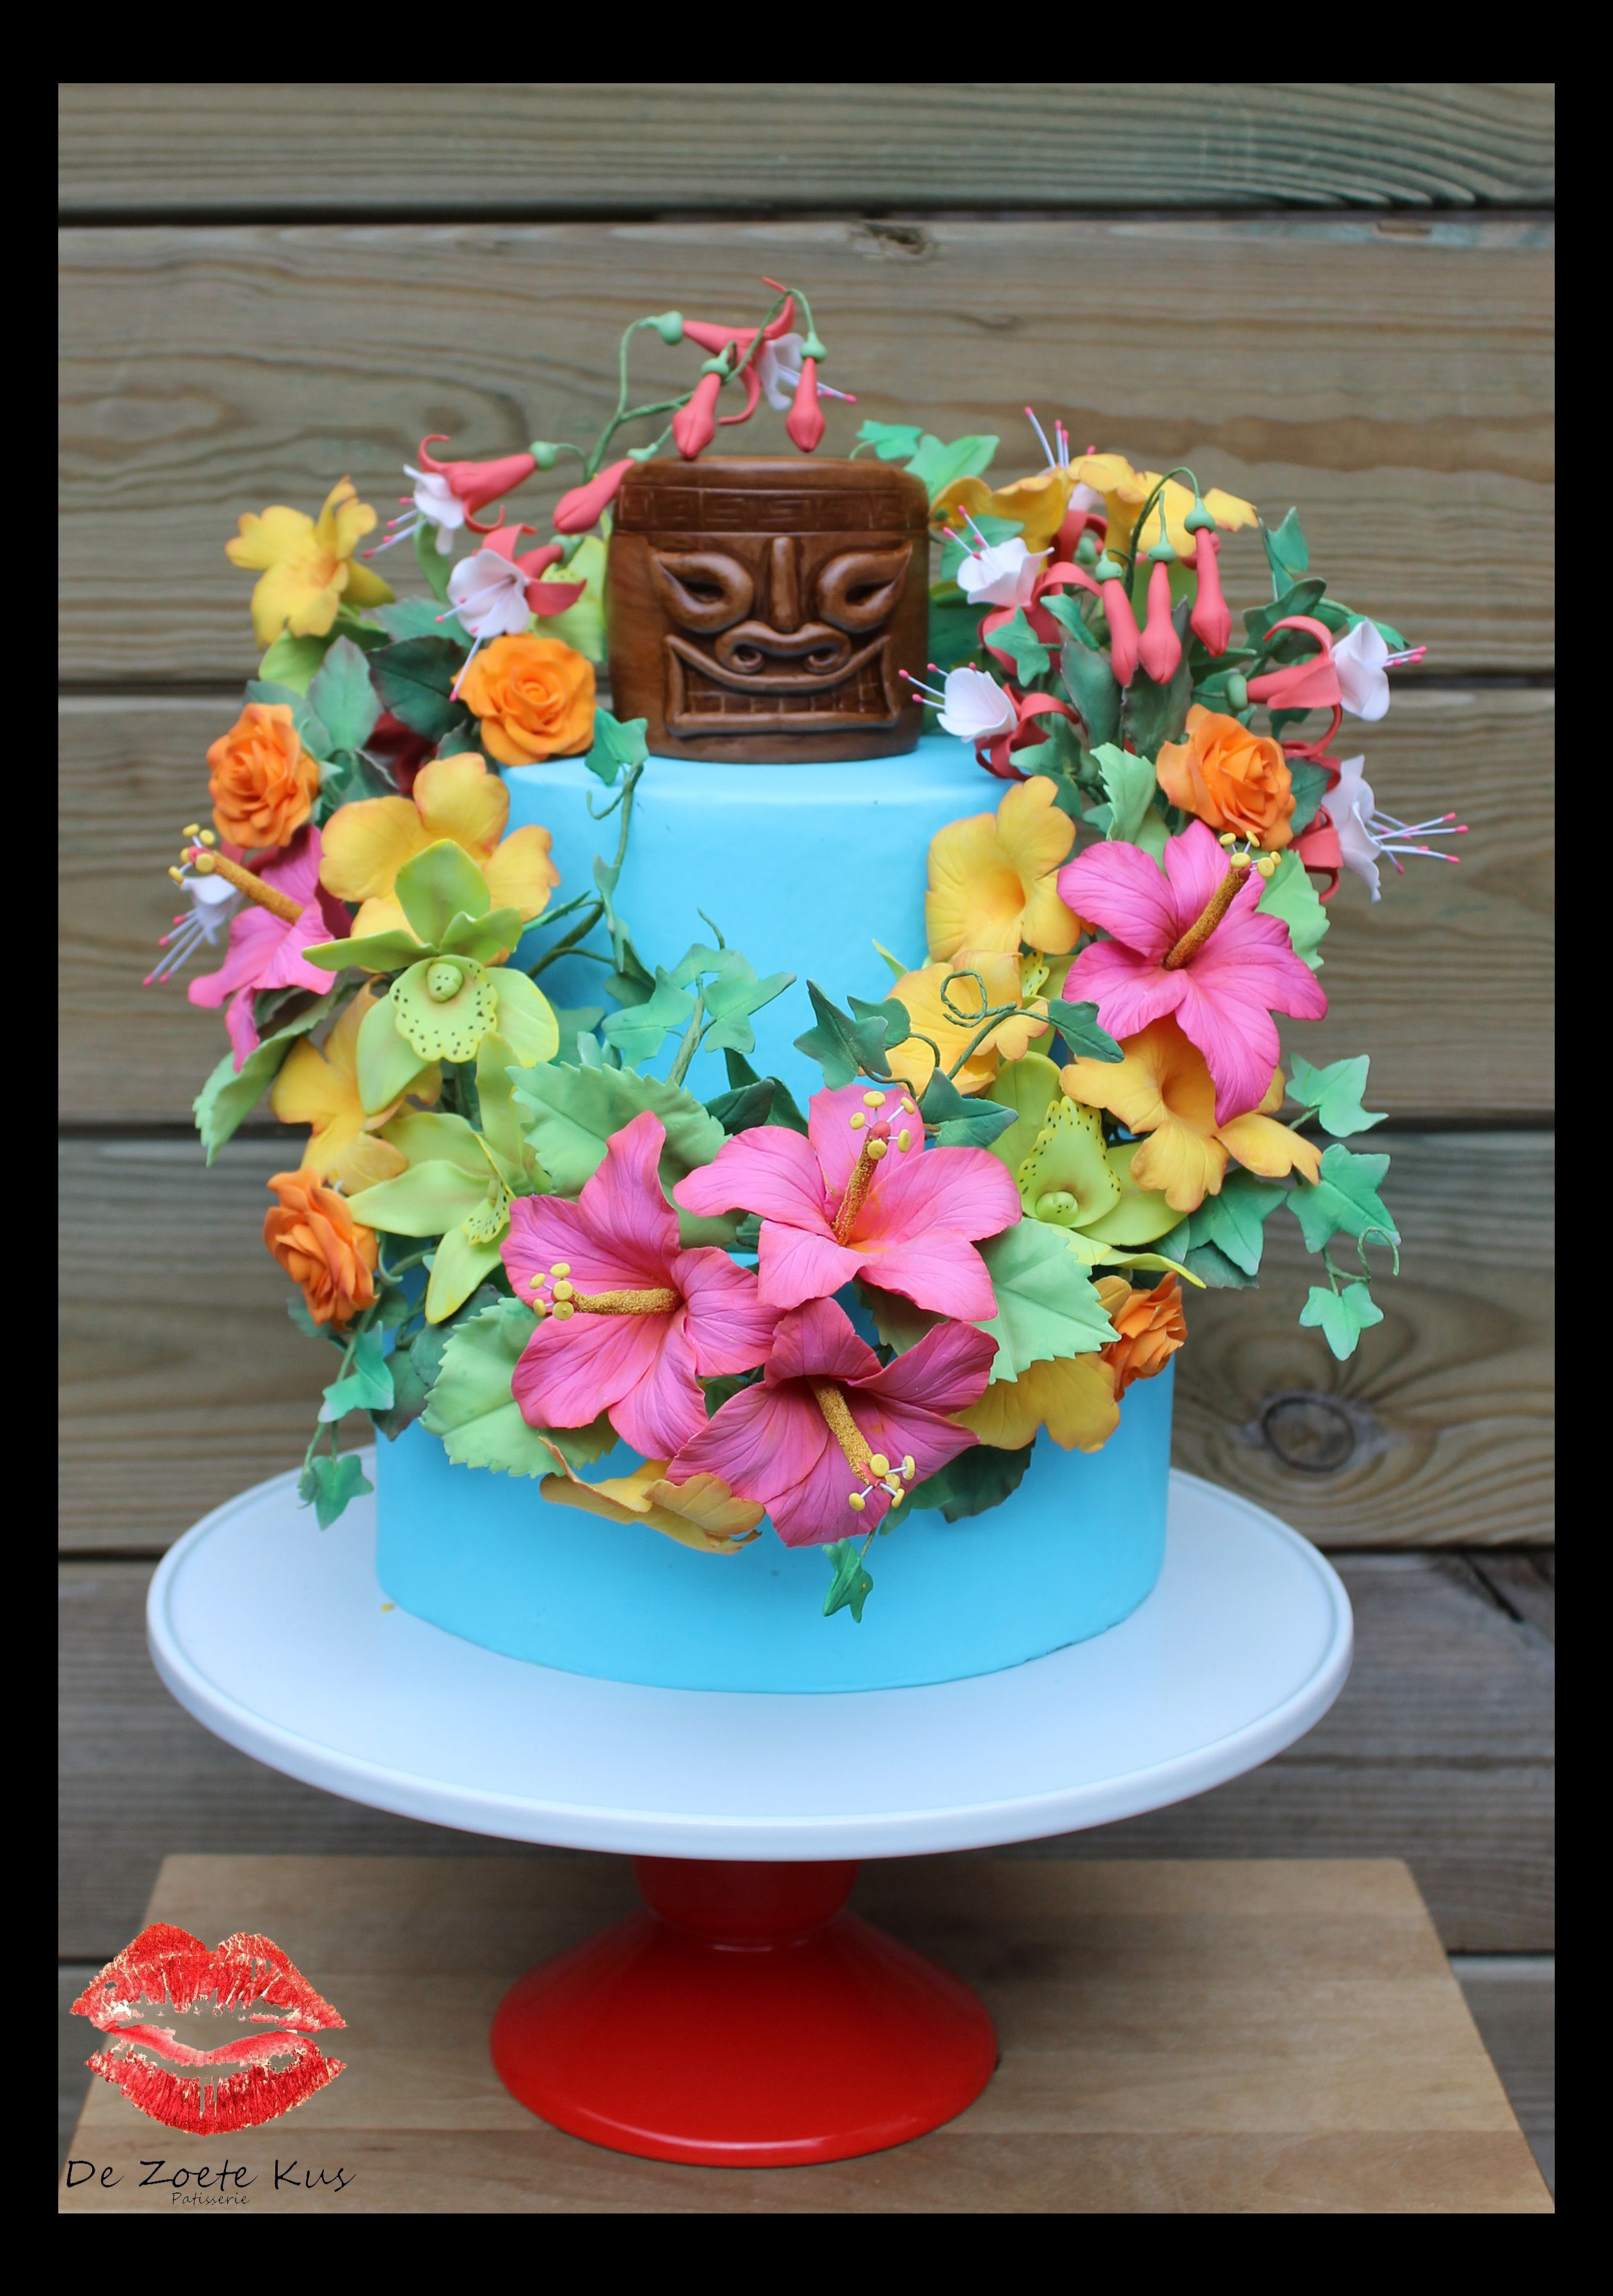 My exam cake for pme sugar flowers course hawaiian styl hibiscus my exam cake for pme sugar flowers course hawaiian styl hibiscus pink izmirmasajfo Gallery